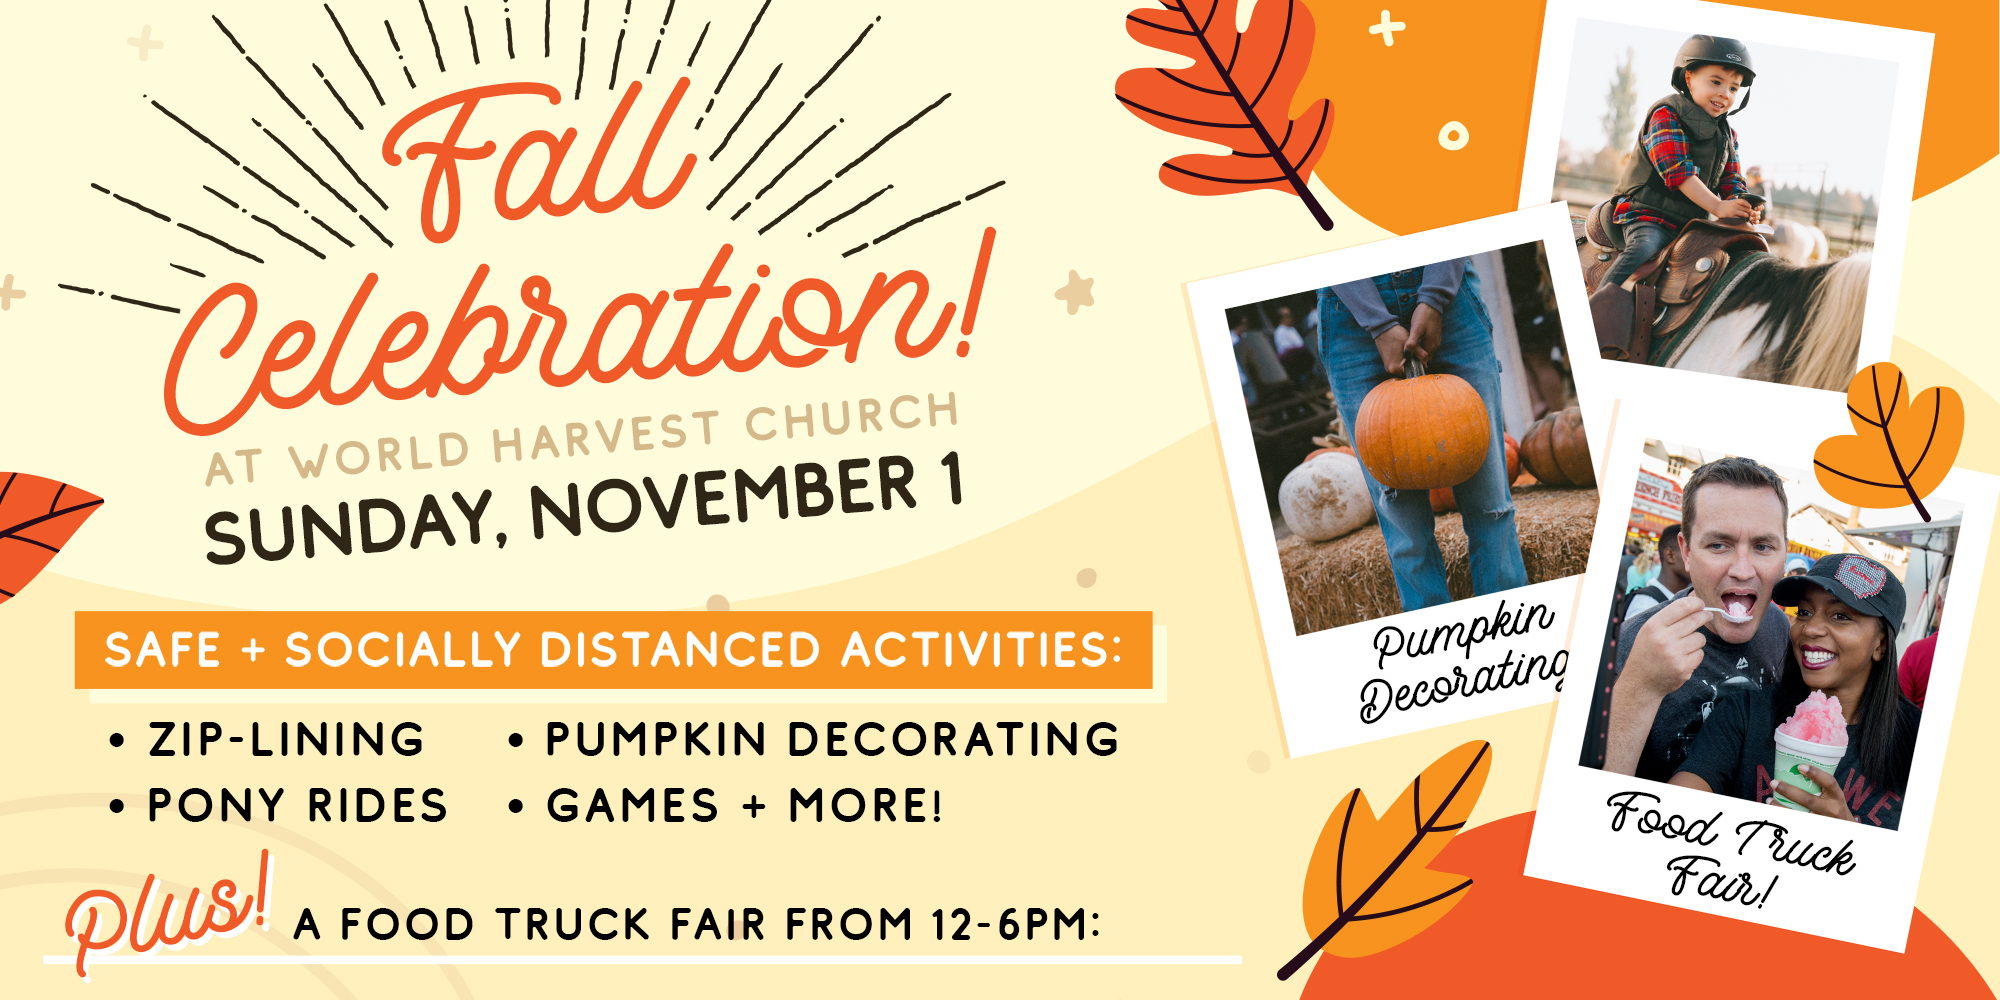 Fall Celebration! At World Harvest Church Sunday, November 1 safe + socially distanced activites: Zip-lining Pumpkin Decorating Pony Rides Games + More! Plus! A food truck fair from 12-6PM